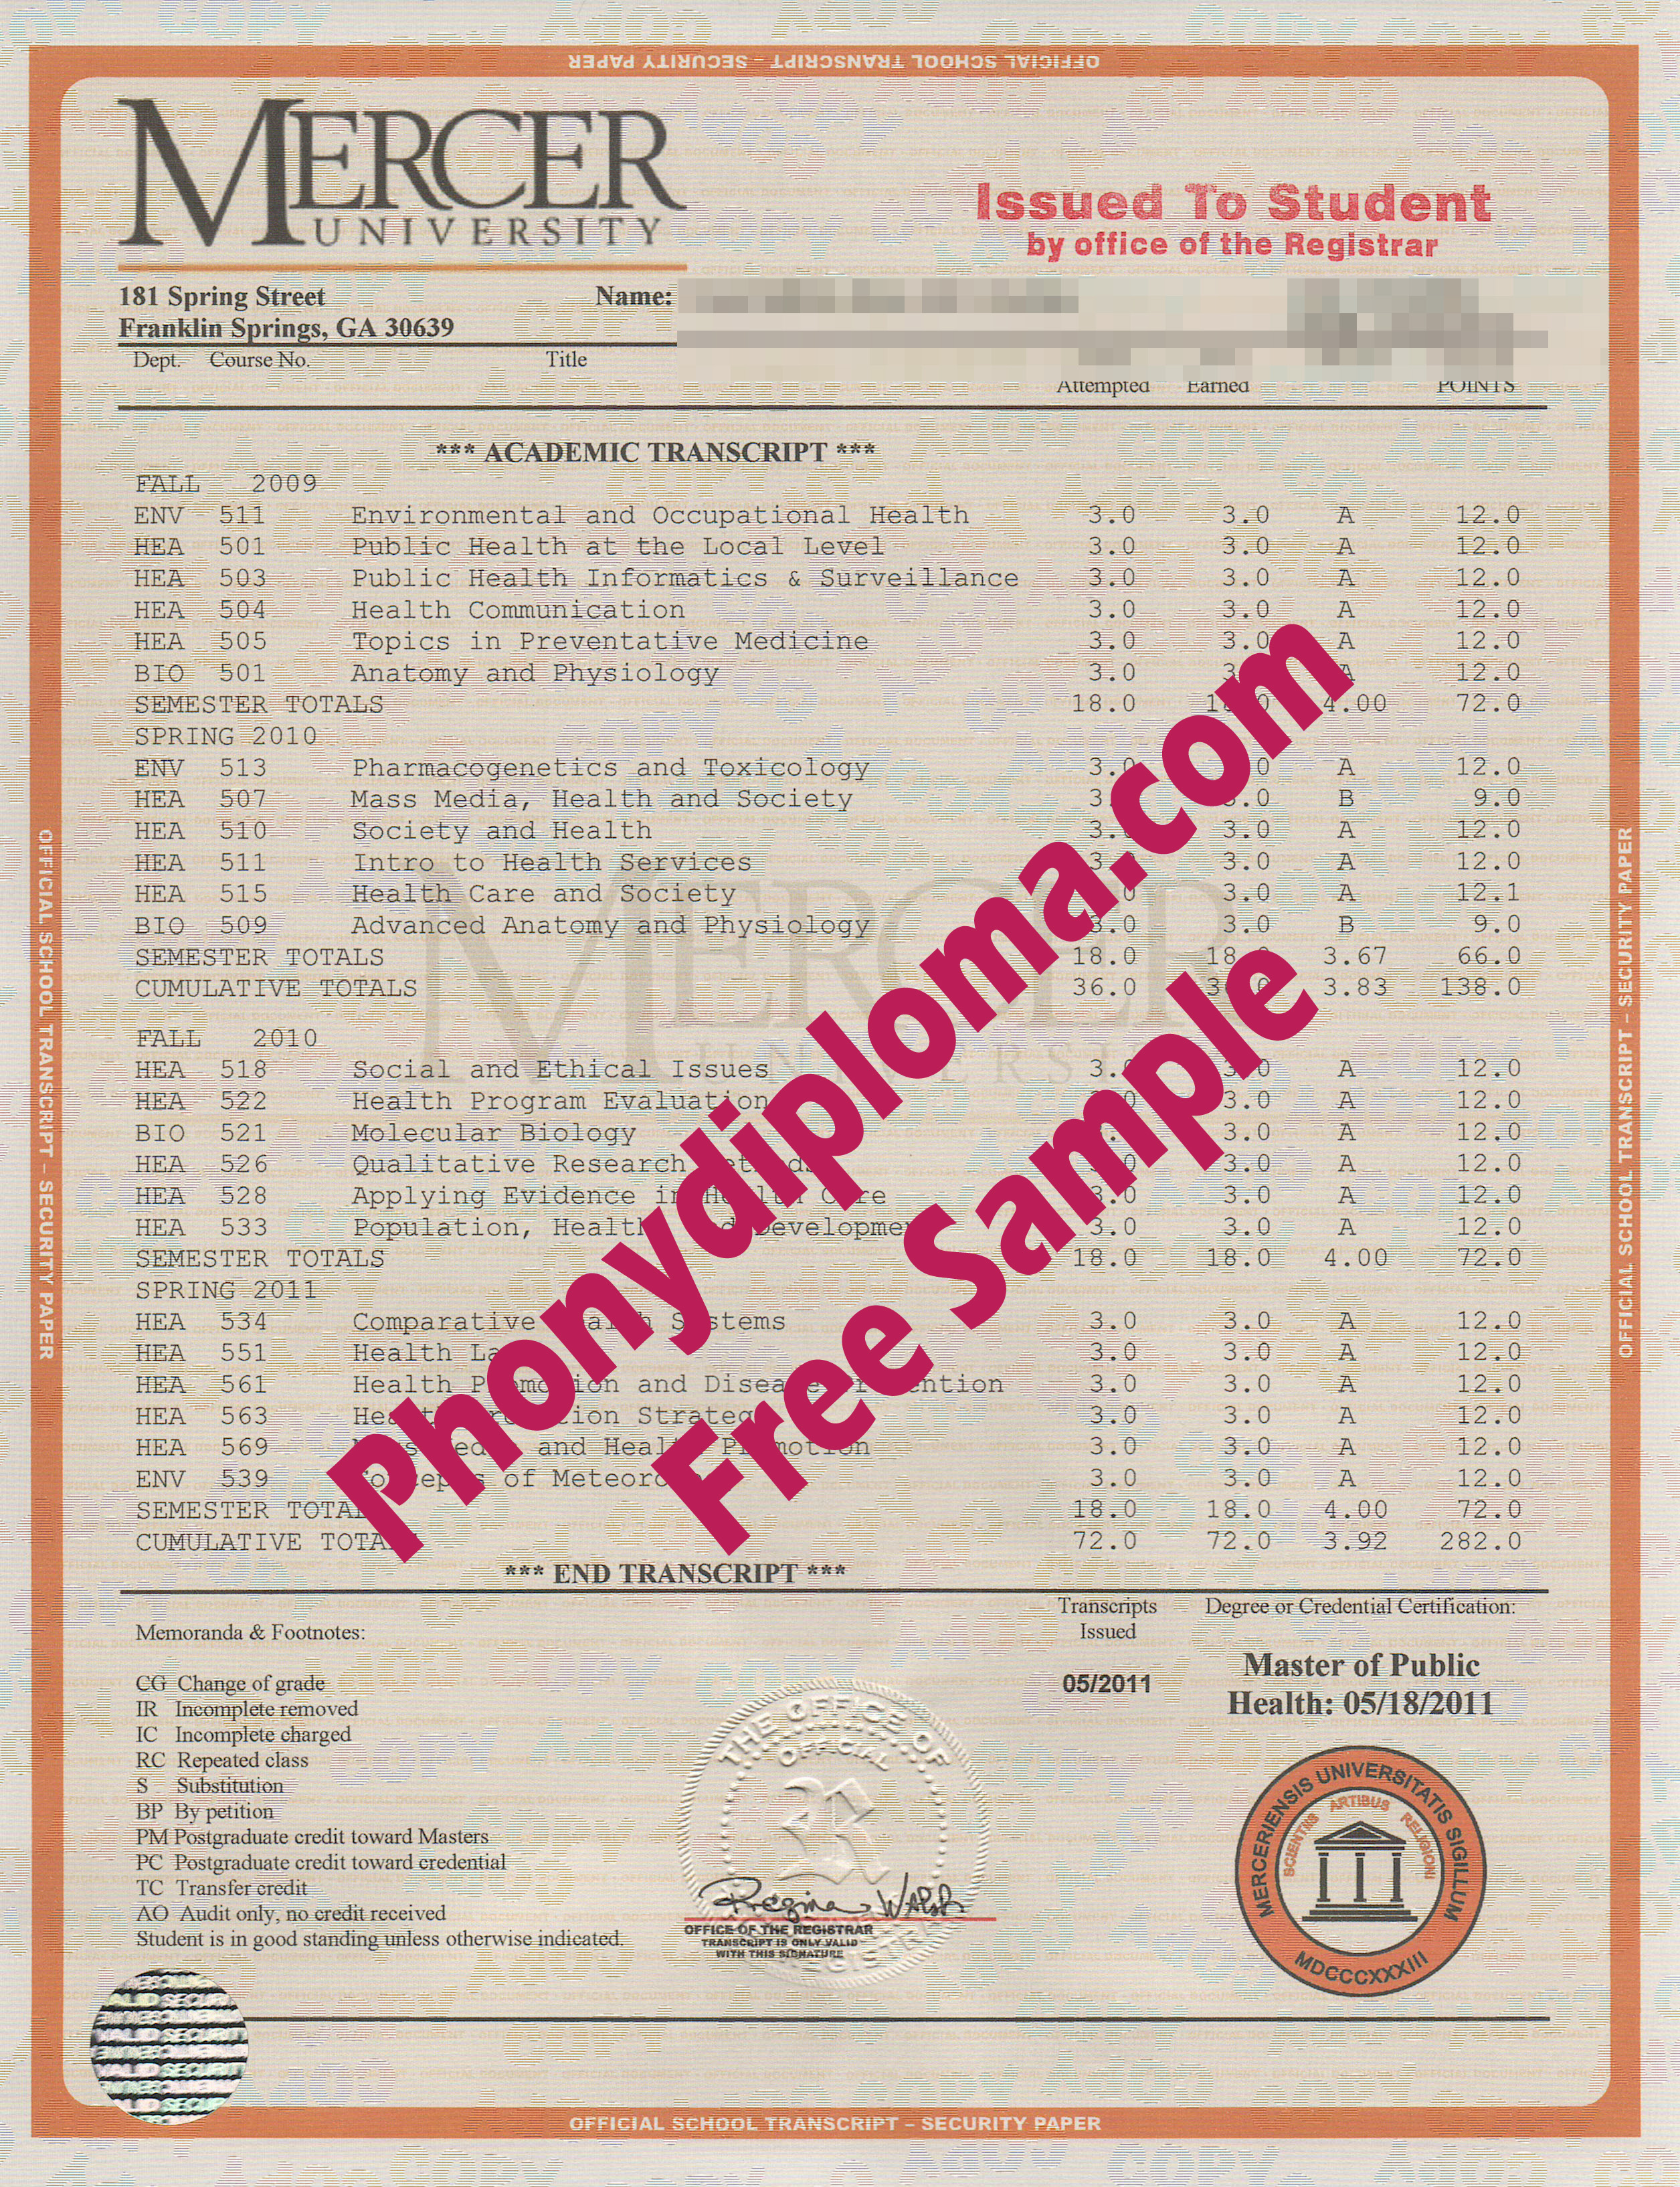 Mercer University House Design Transcripts Free Sample From Phonydiploma